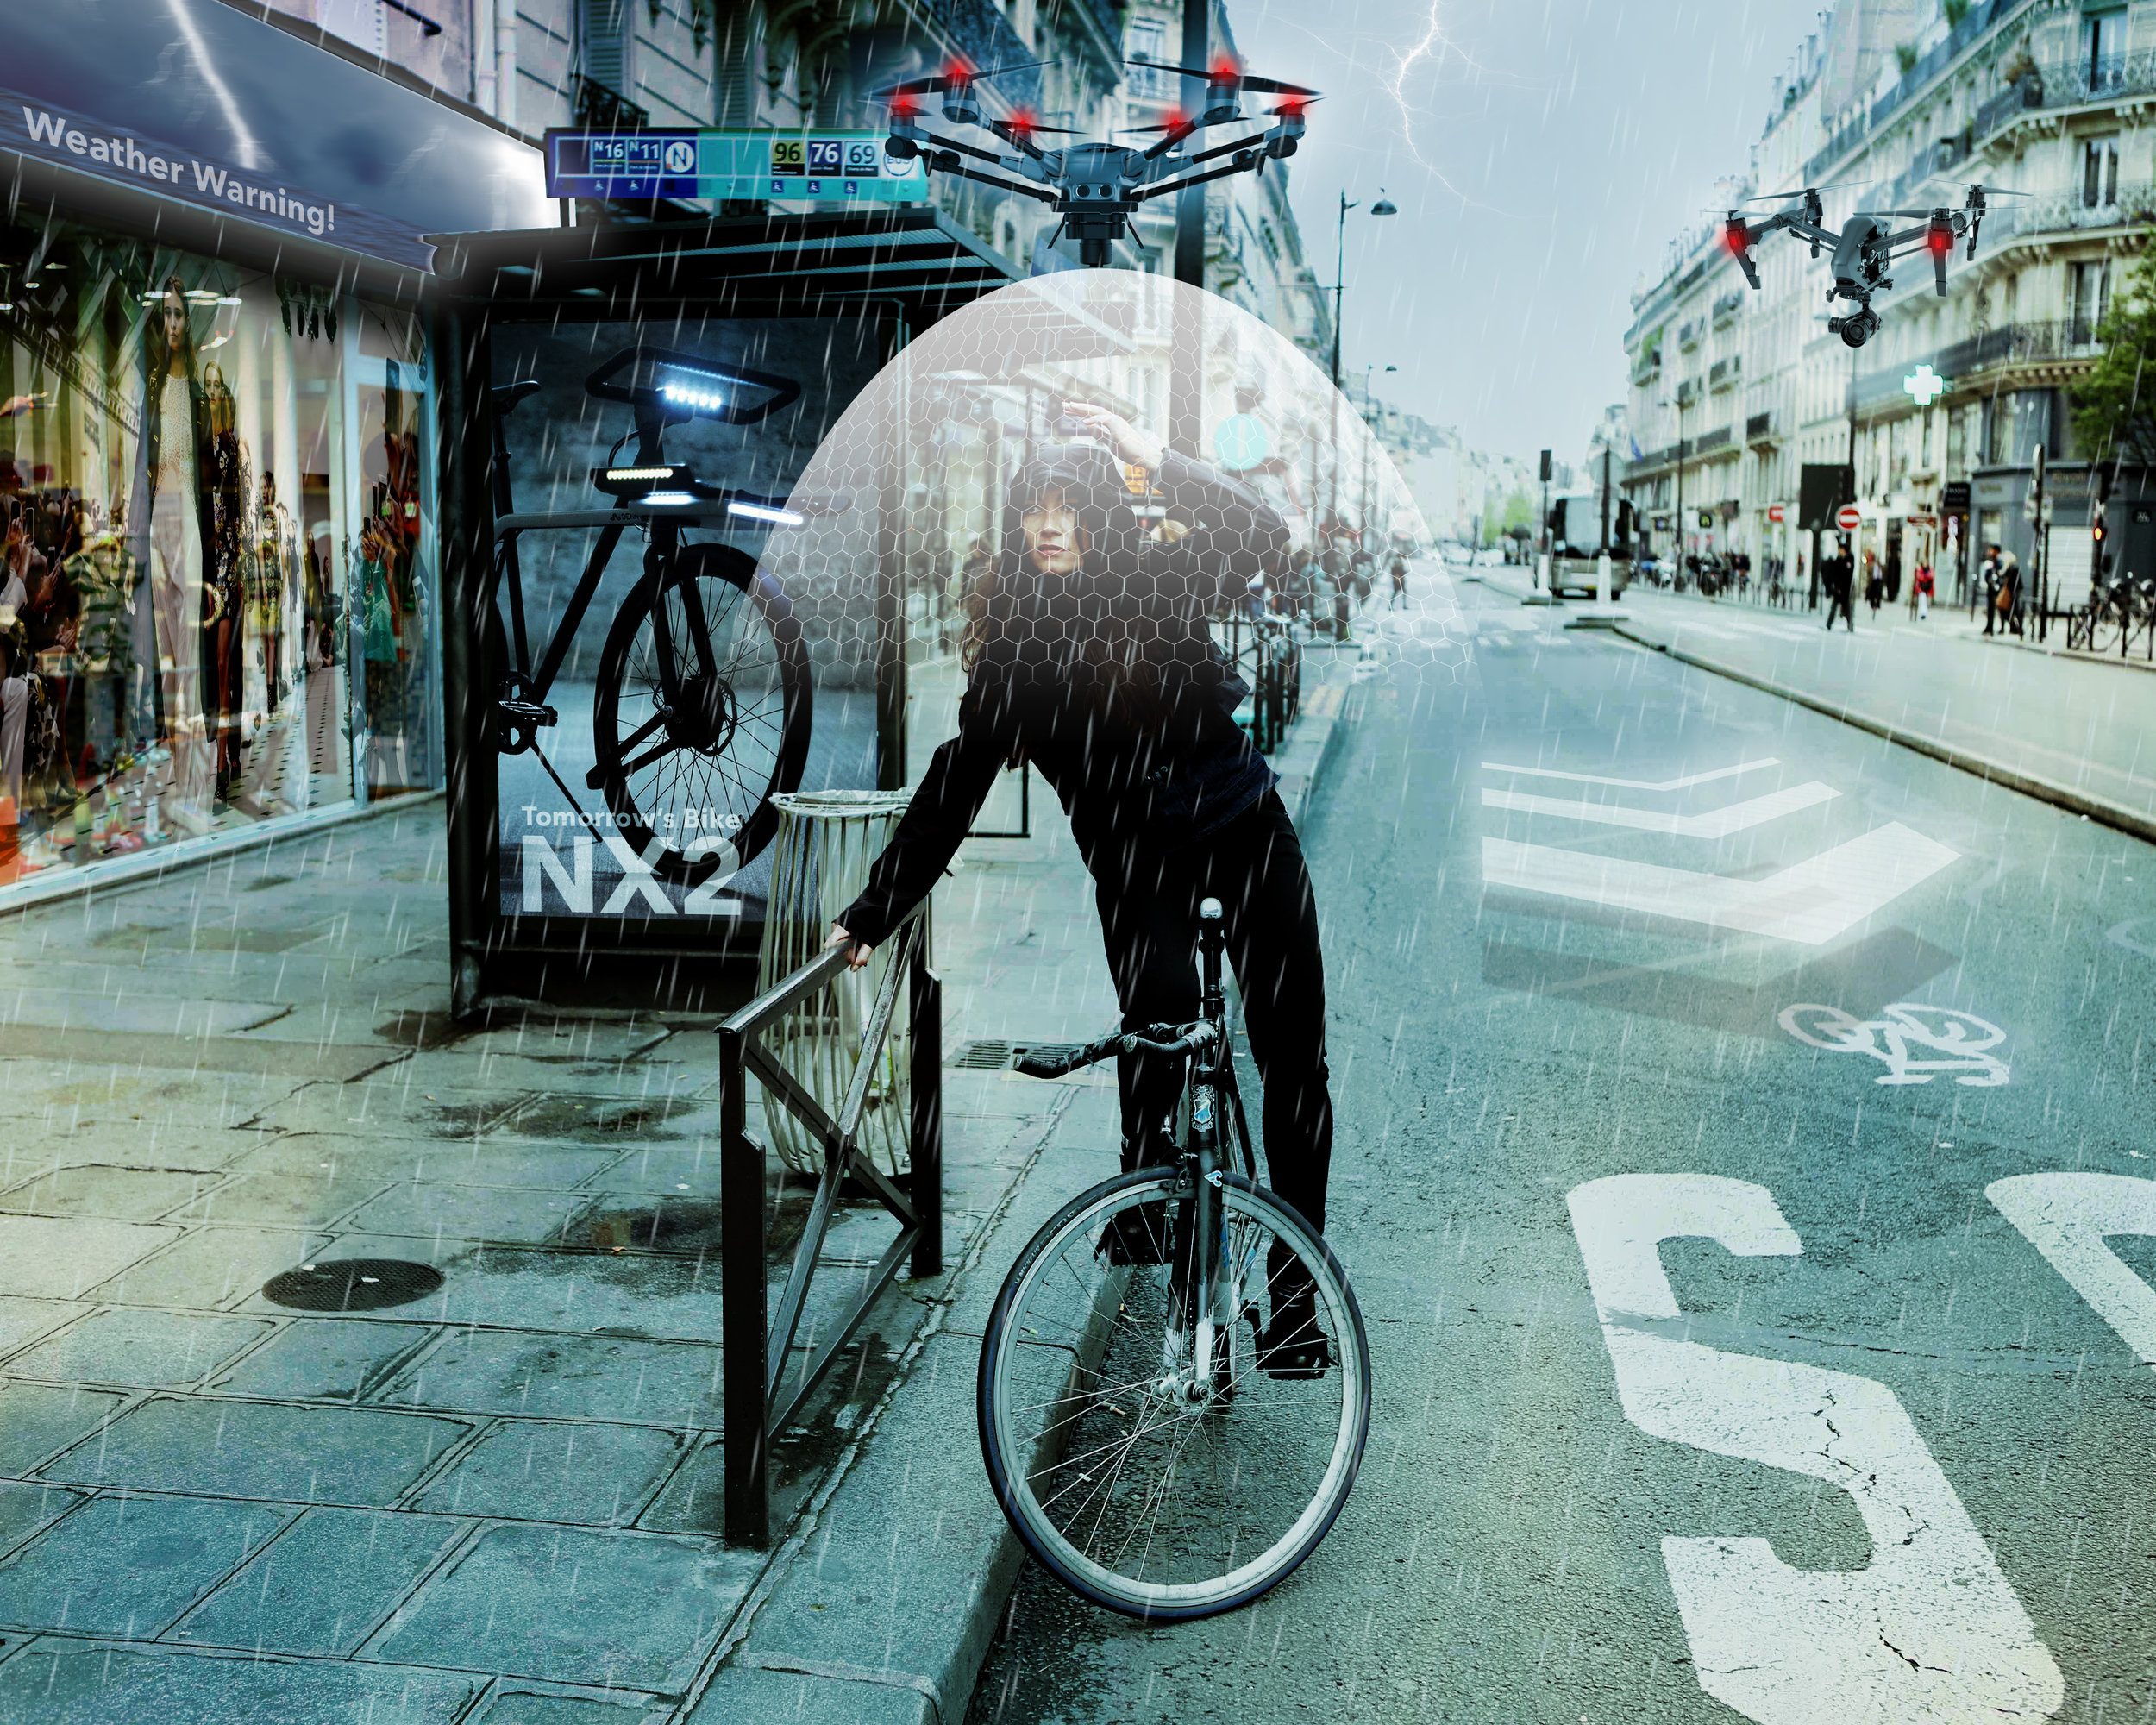 Technology can make urban life better for all, for example, mini electric drones can be used to provide rain shelter that follows the cyclists using GPS technology that already exists.